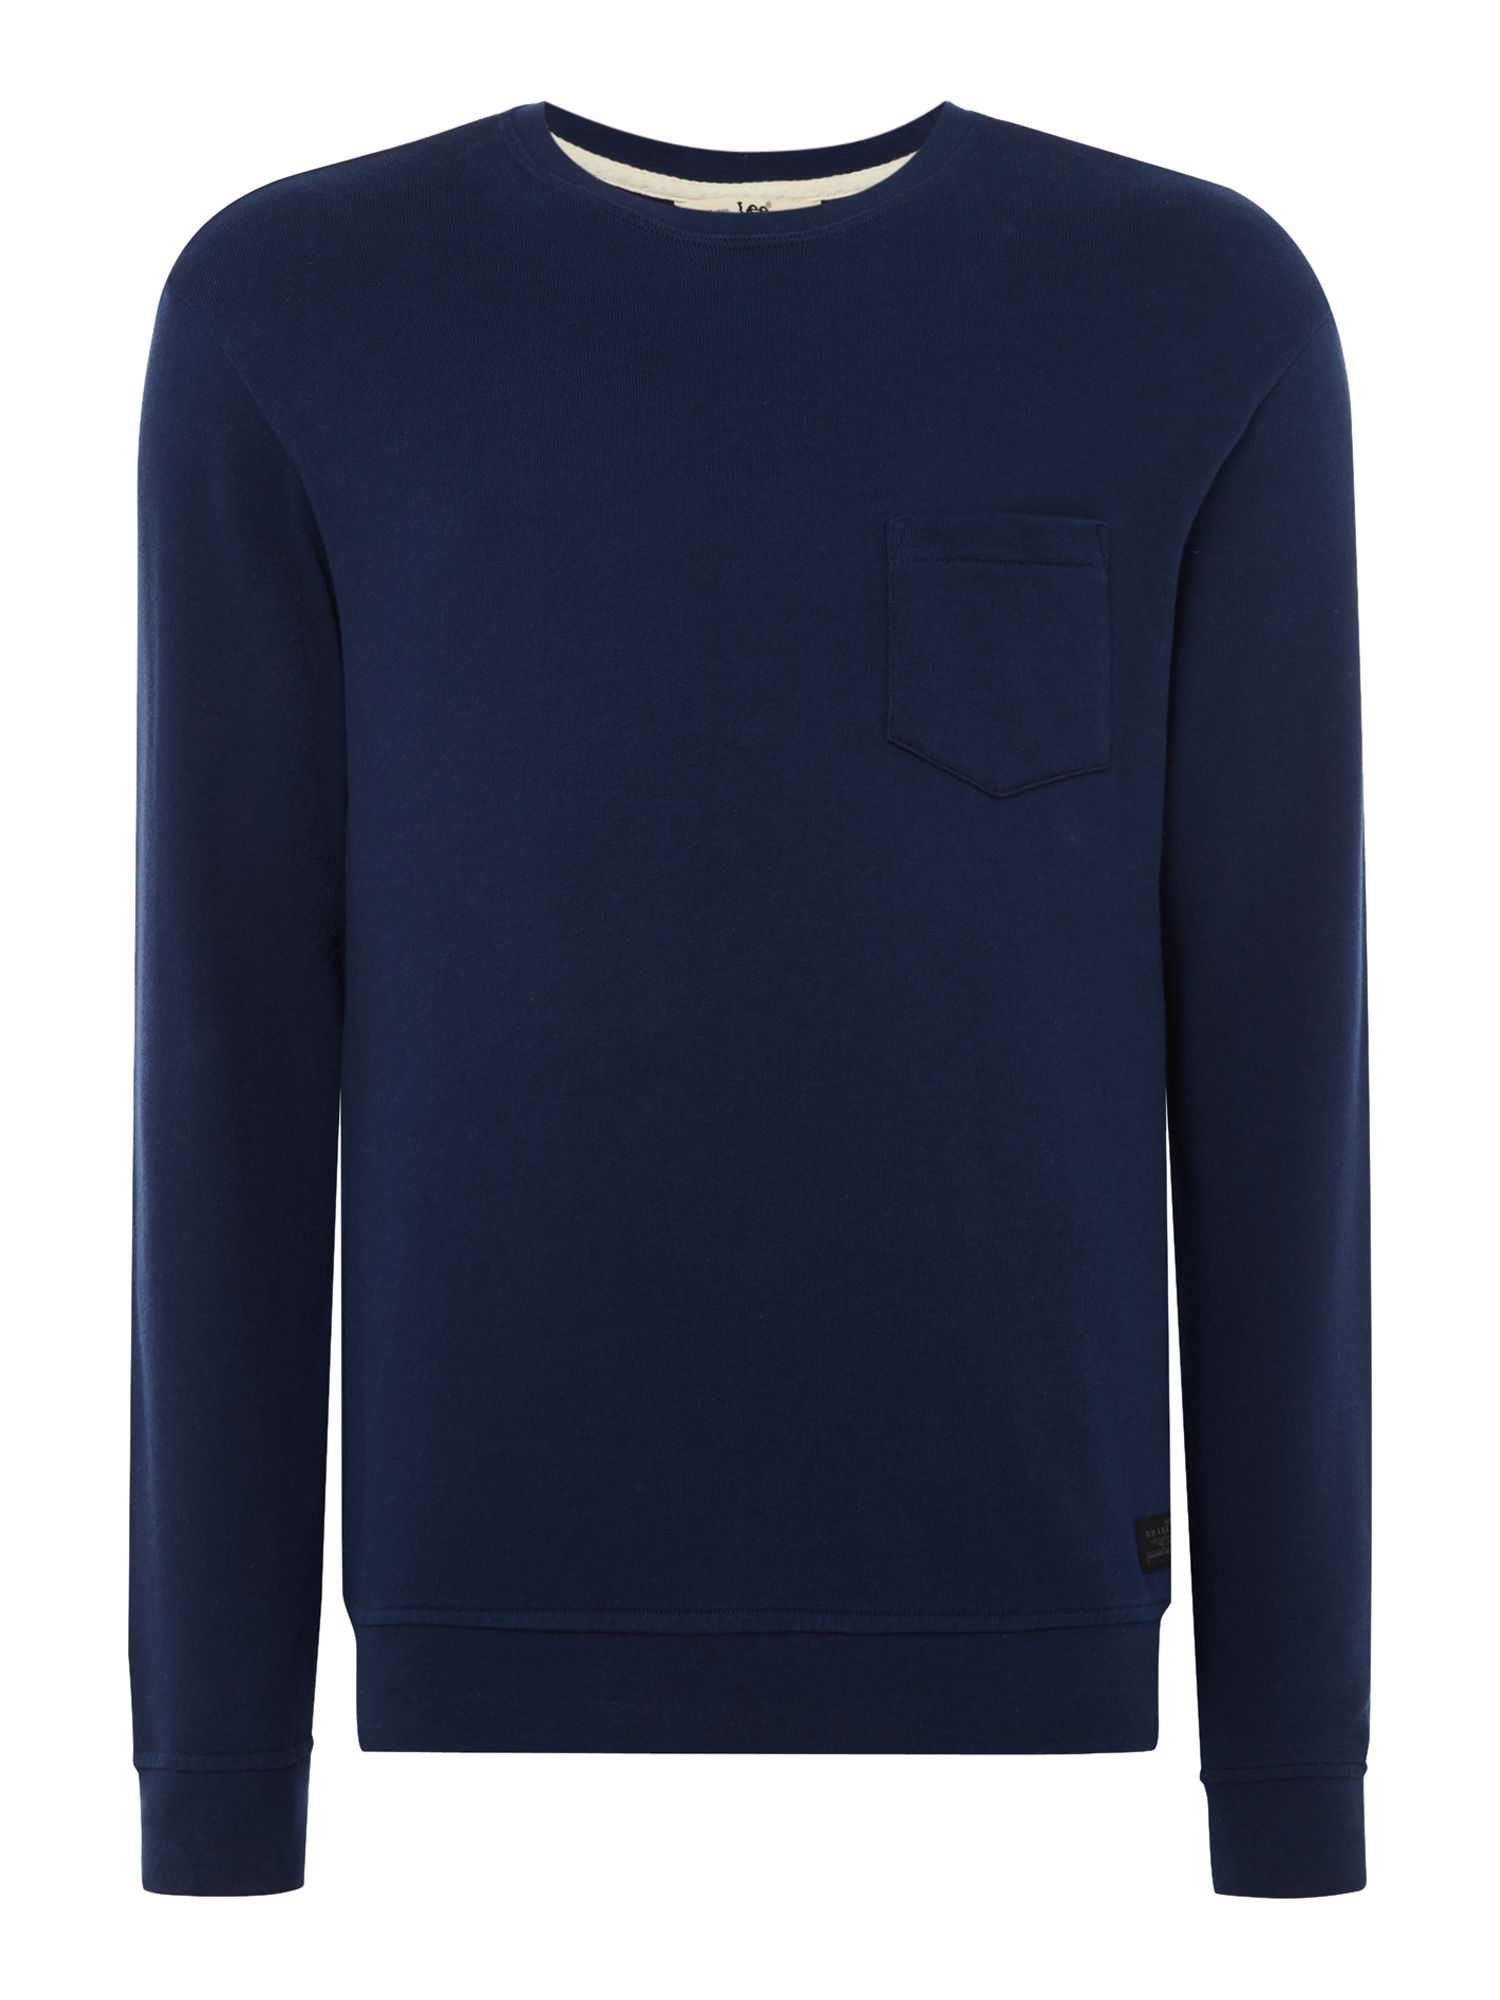 Men's Lee Indigo Pocket Sweatshirt, Indigo